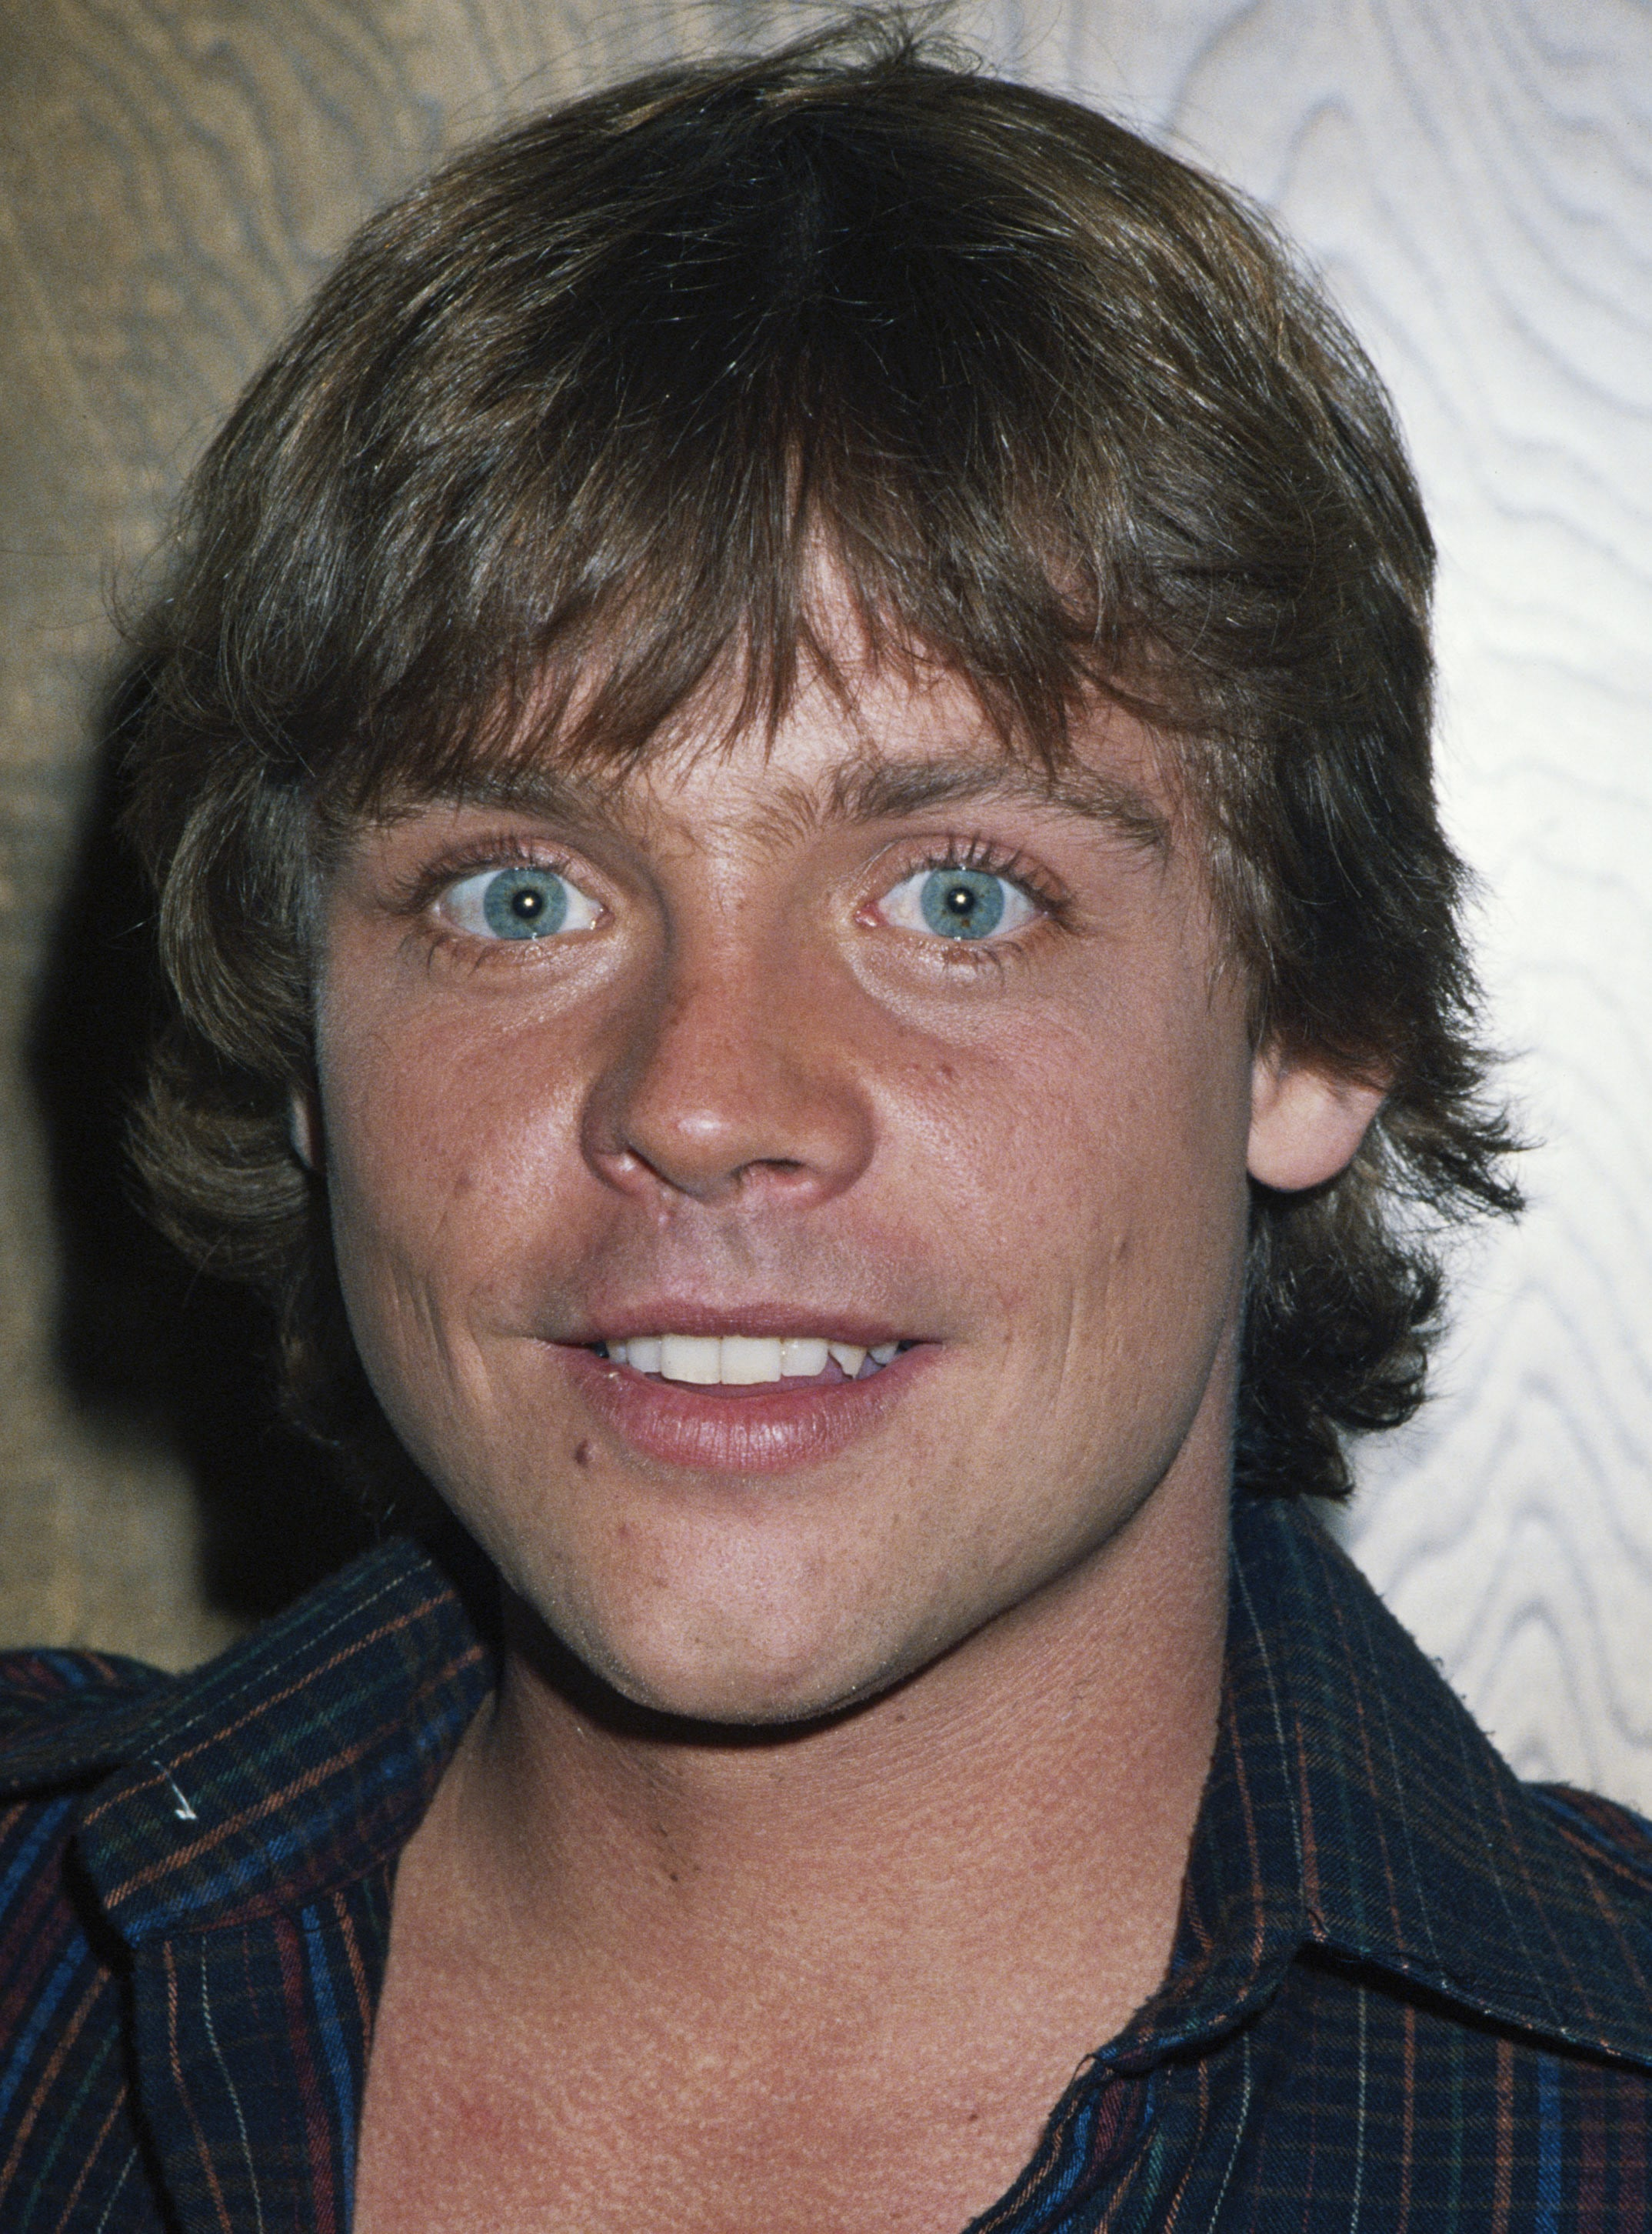 Mark Hamill For mobile